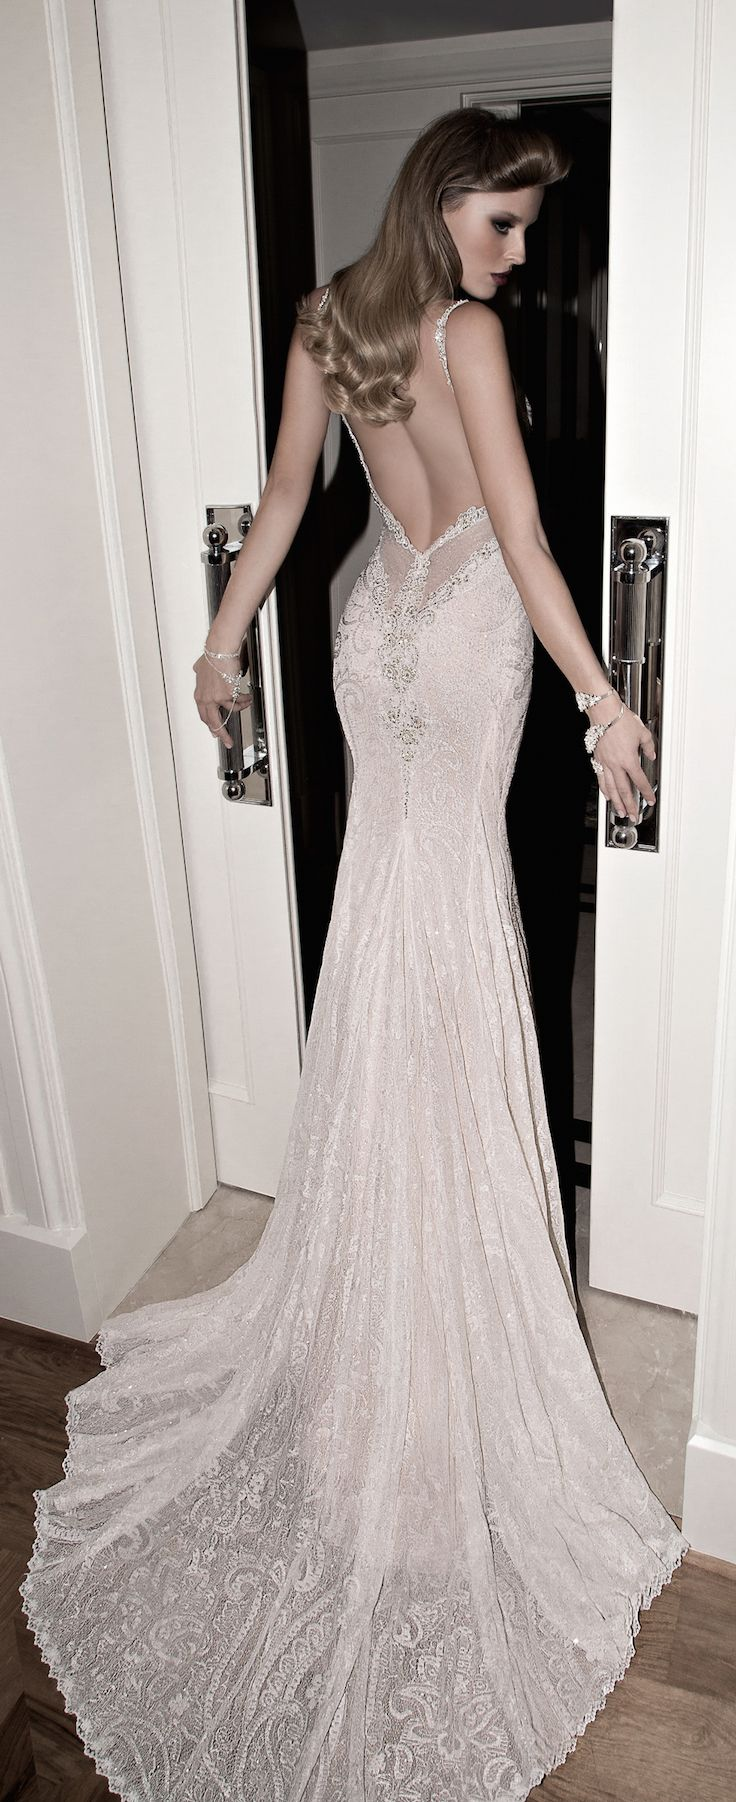 Introducing the norma bridal gown from our new collection